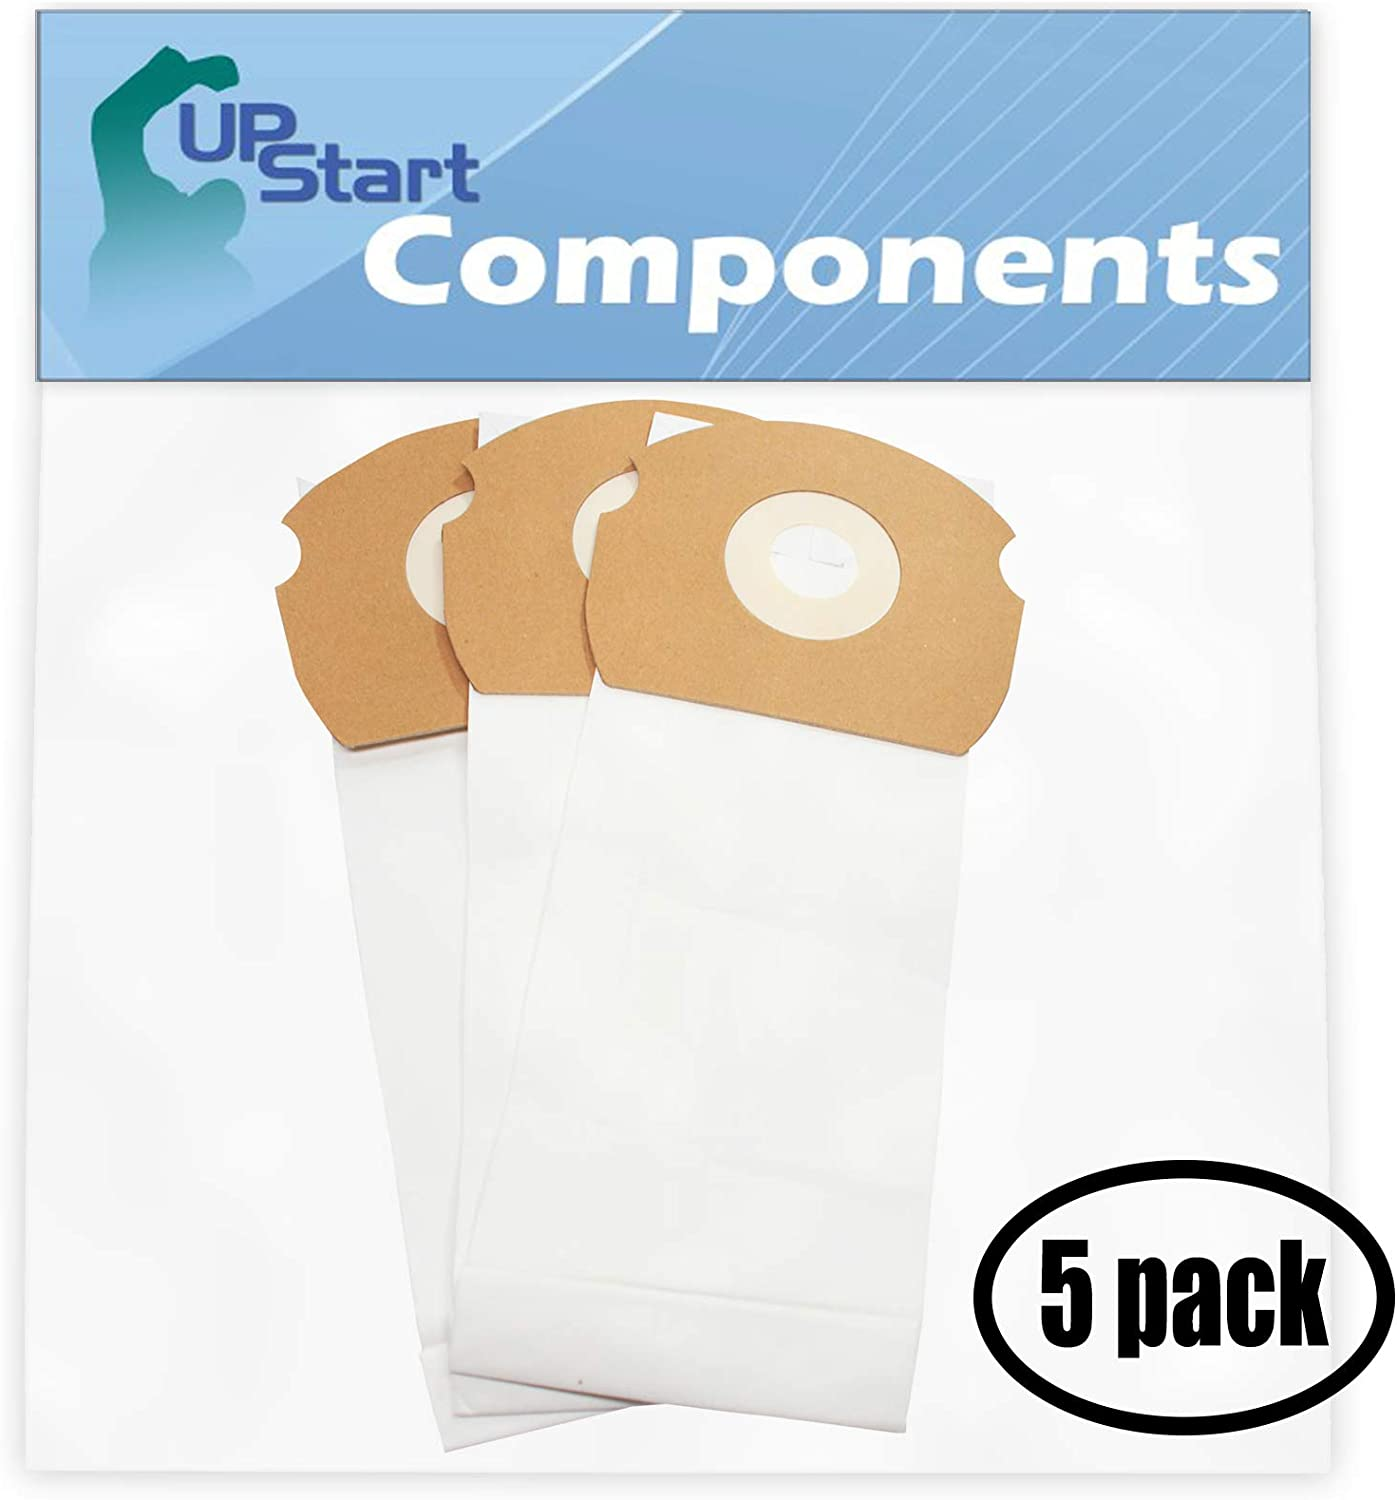 Upstart Battery 15 Replacement for Eureka Airspeed AS1050 Vacuum Bags - Compatible with Eureka 68155, AS Vacuum Bags (5-Pack - 3 Vacuum Bags per Pack)